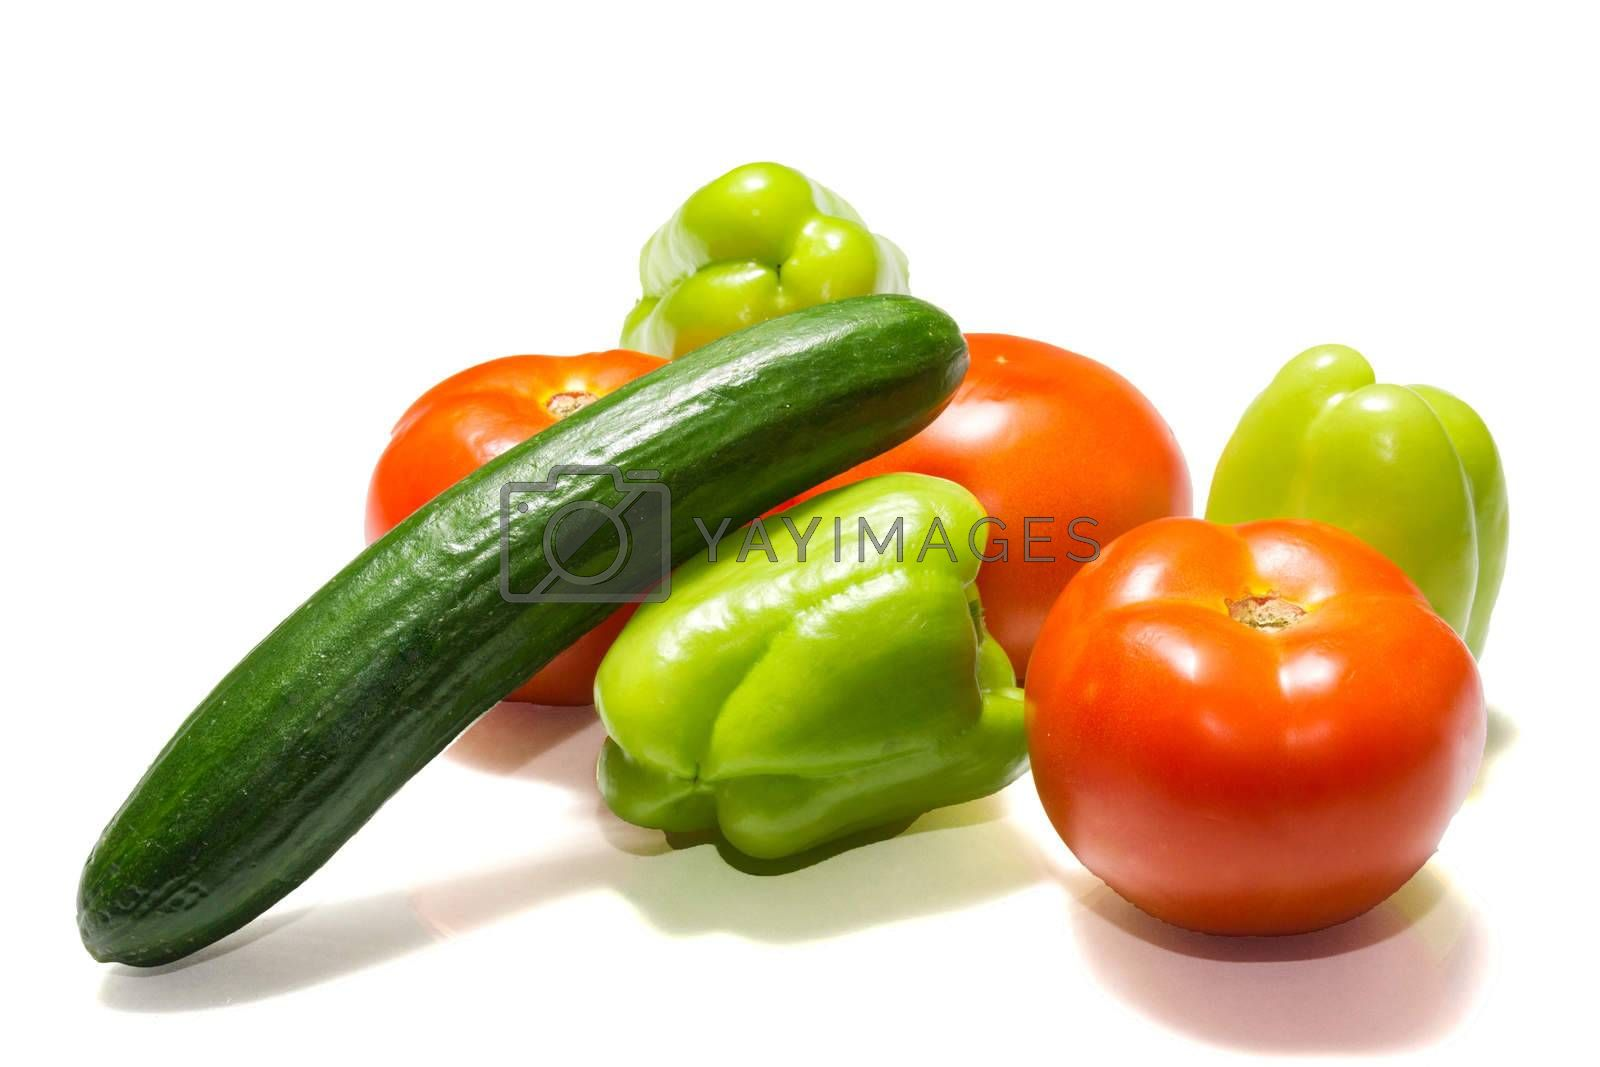 The photo shows vegetables on a white background